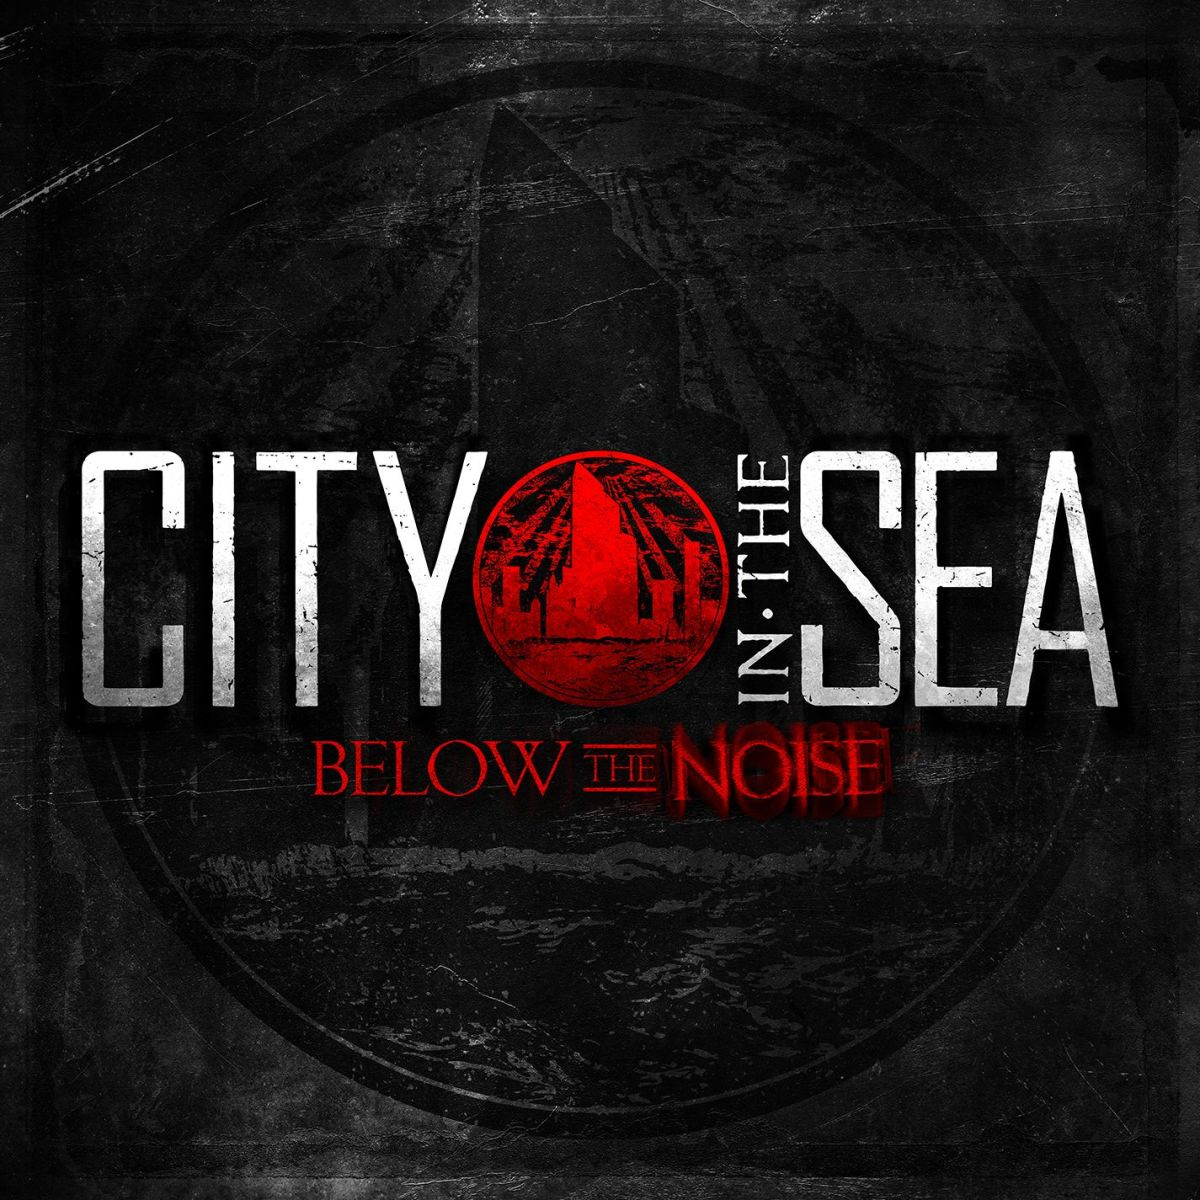 City In The Sea - Below The Noise (2013)